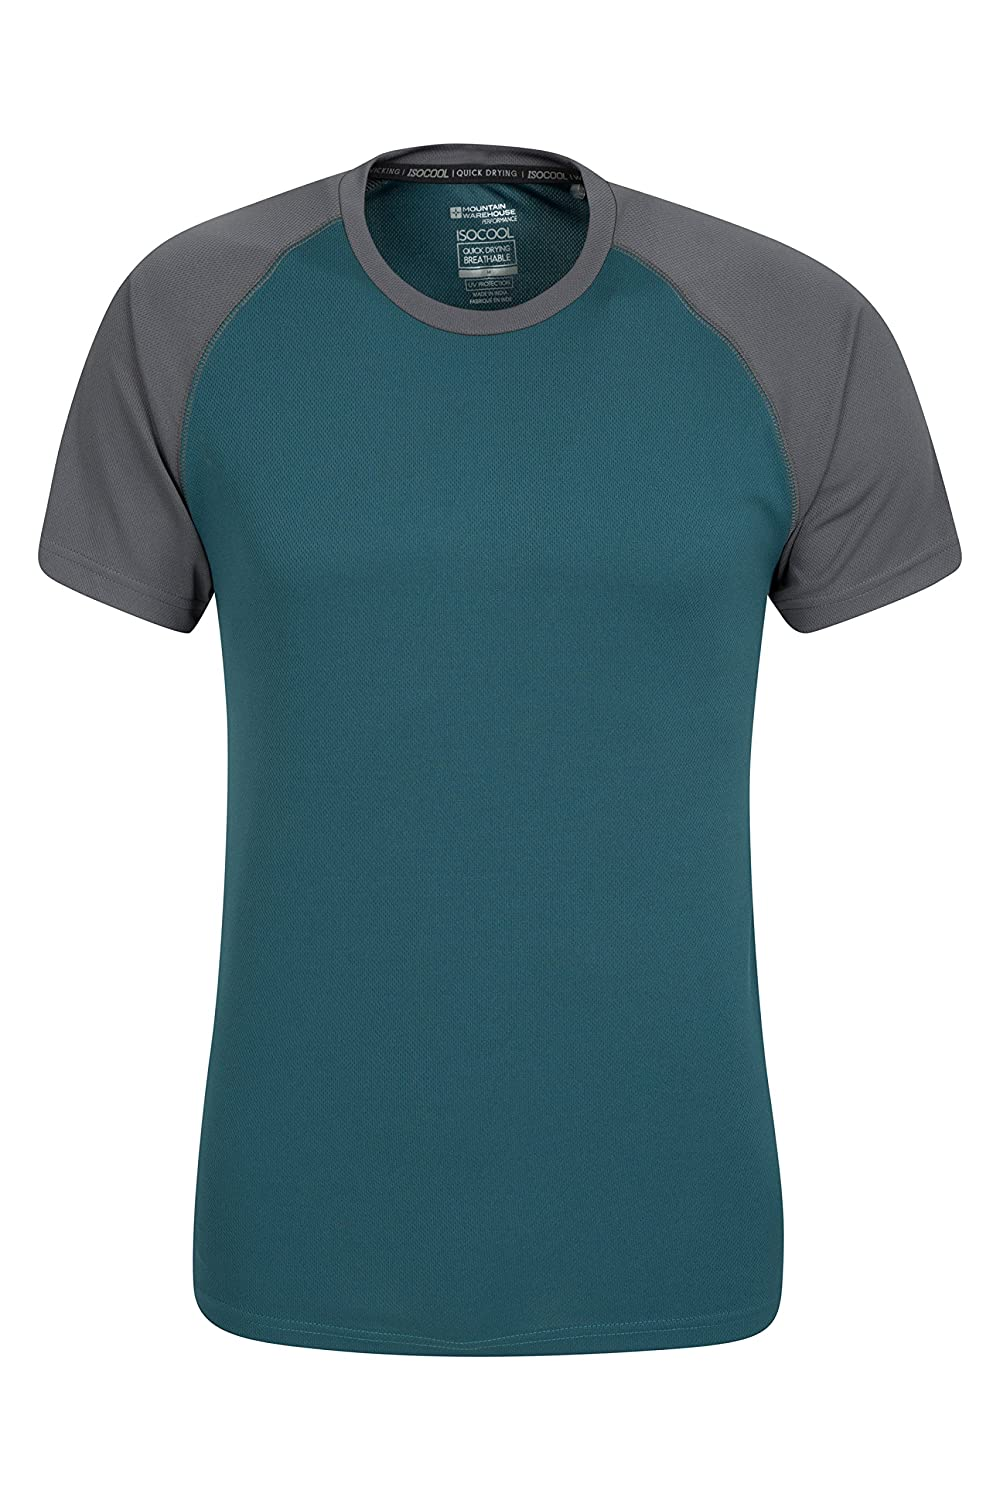 Contoh design t shirt family day - Mountain Warehouse Endurance Men S T Shirt Breathable Uv Protection With Isocool Quick